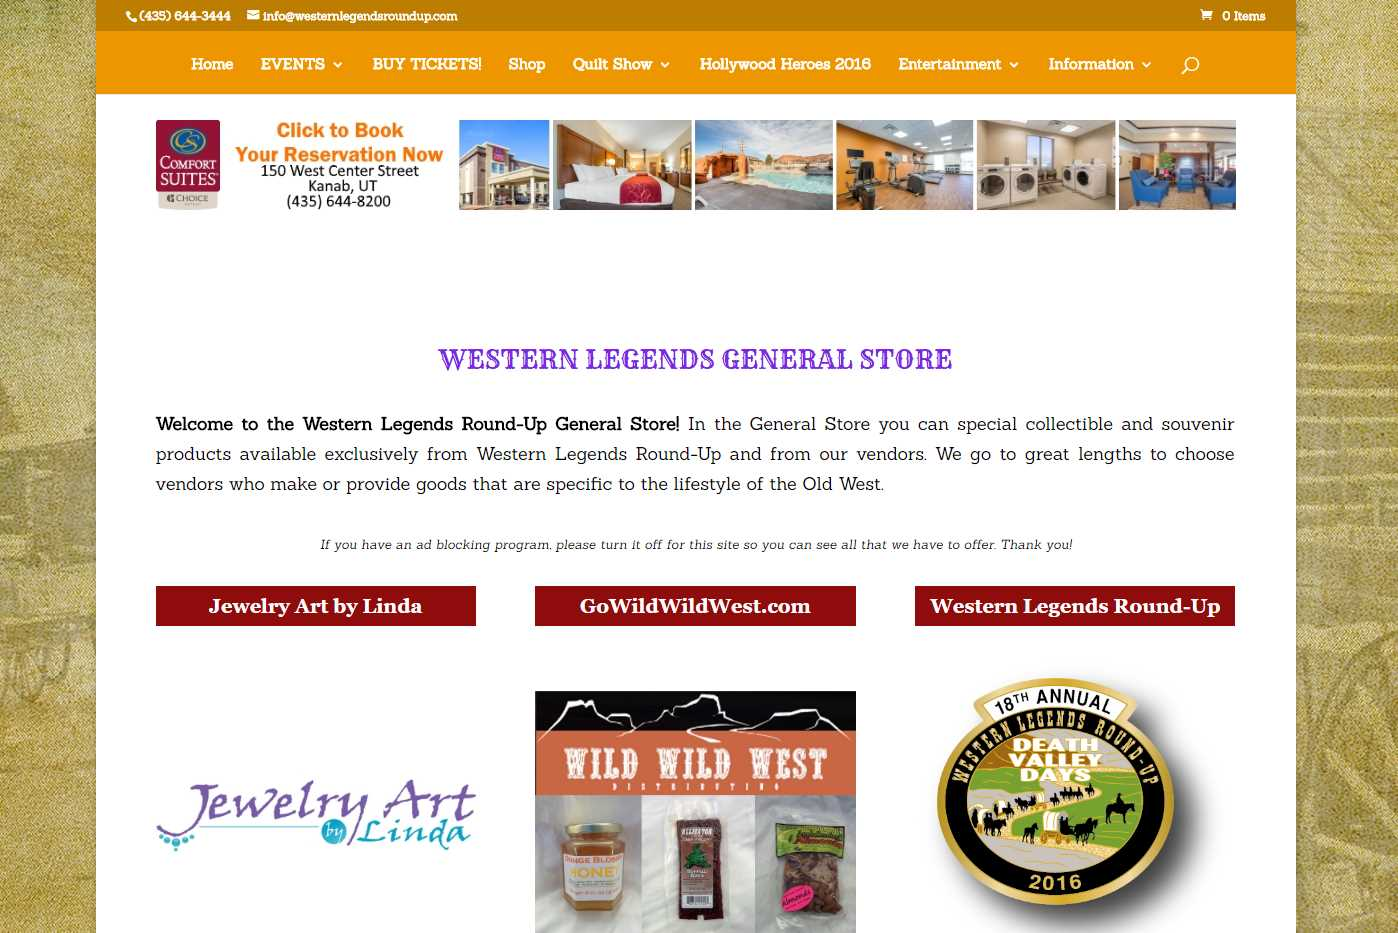 Western Legends Round-Up General Store Page